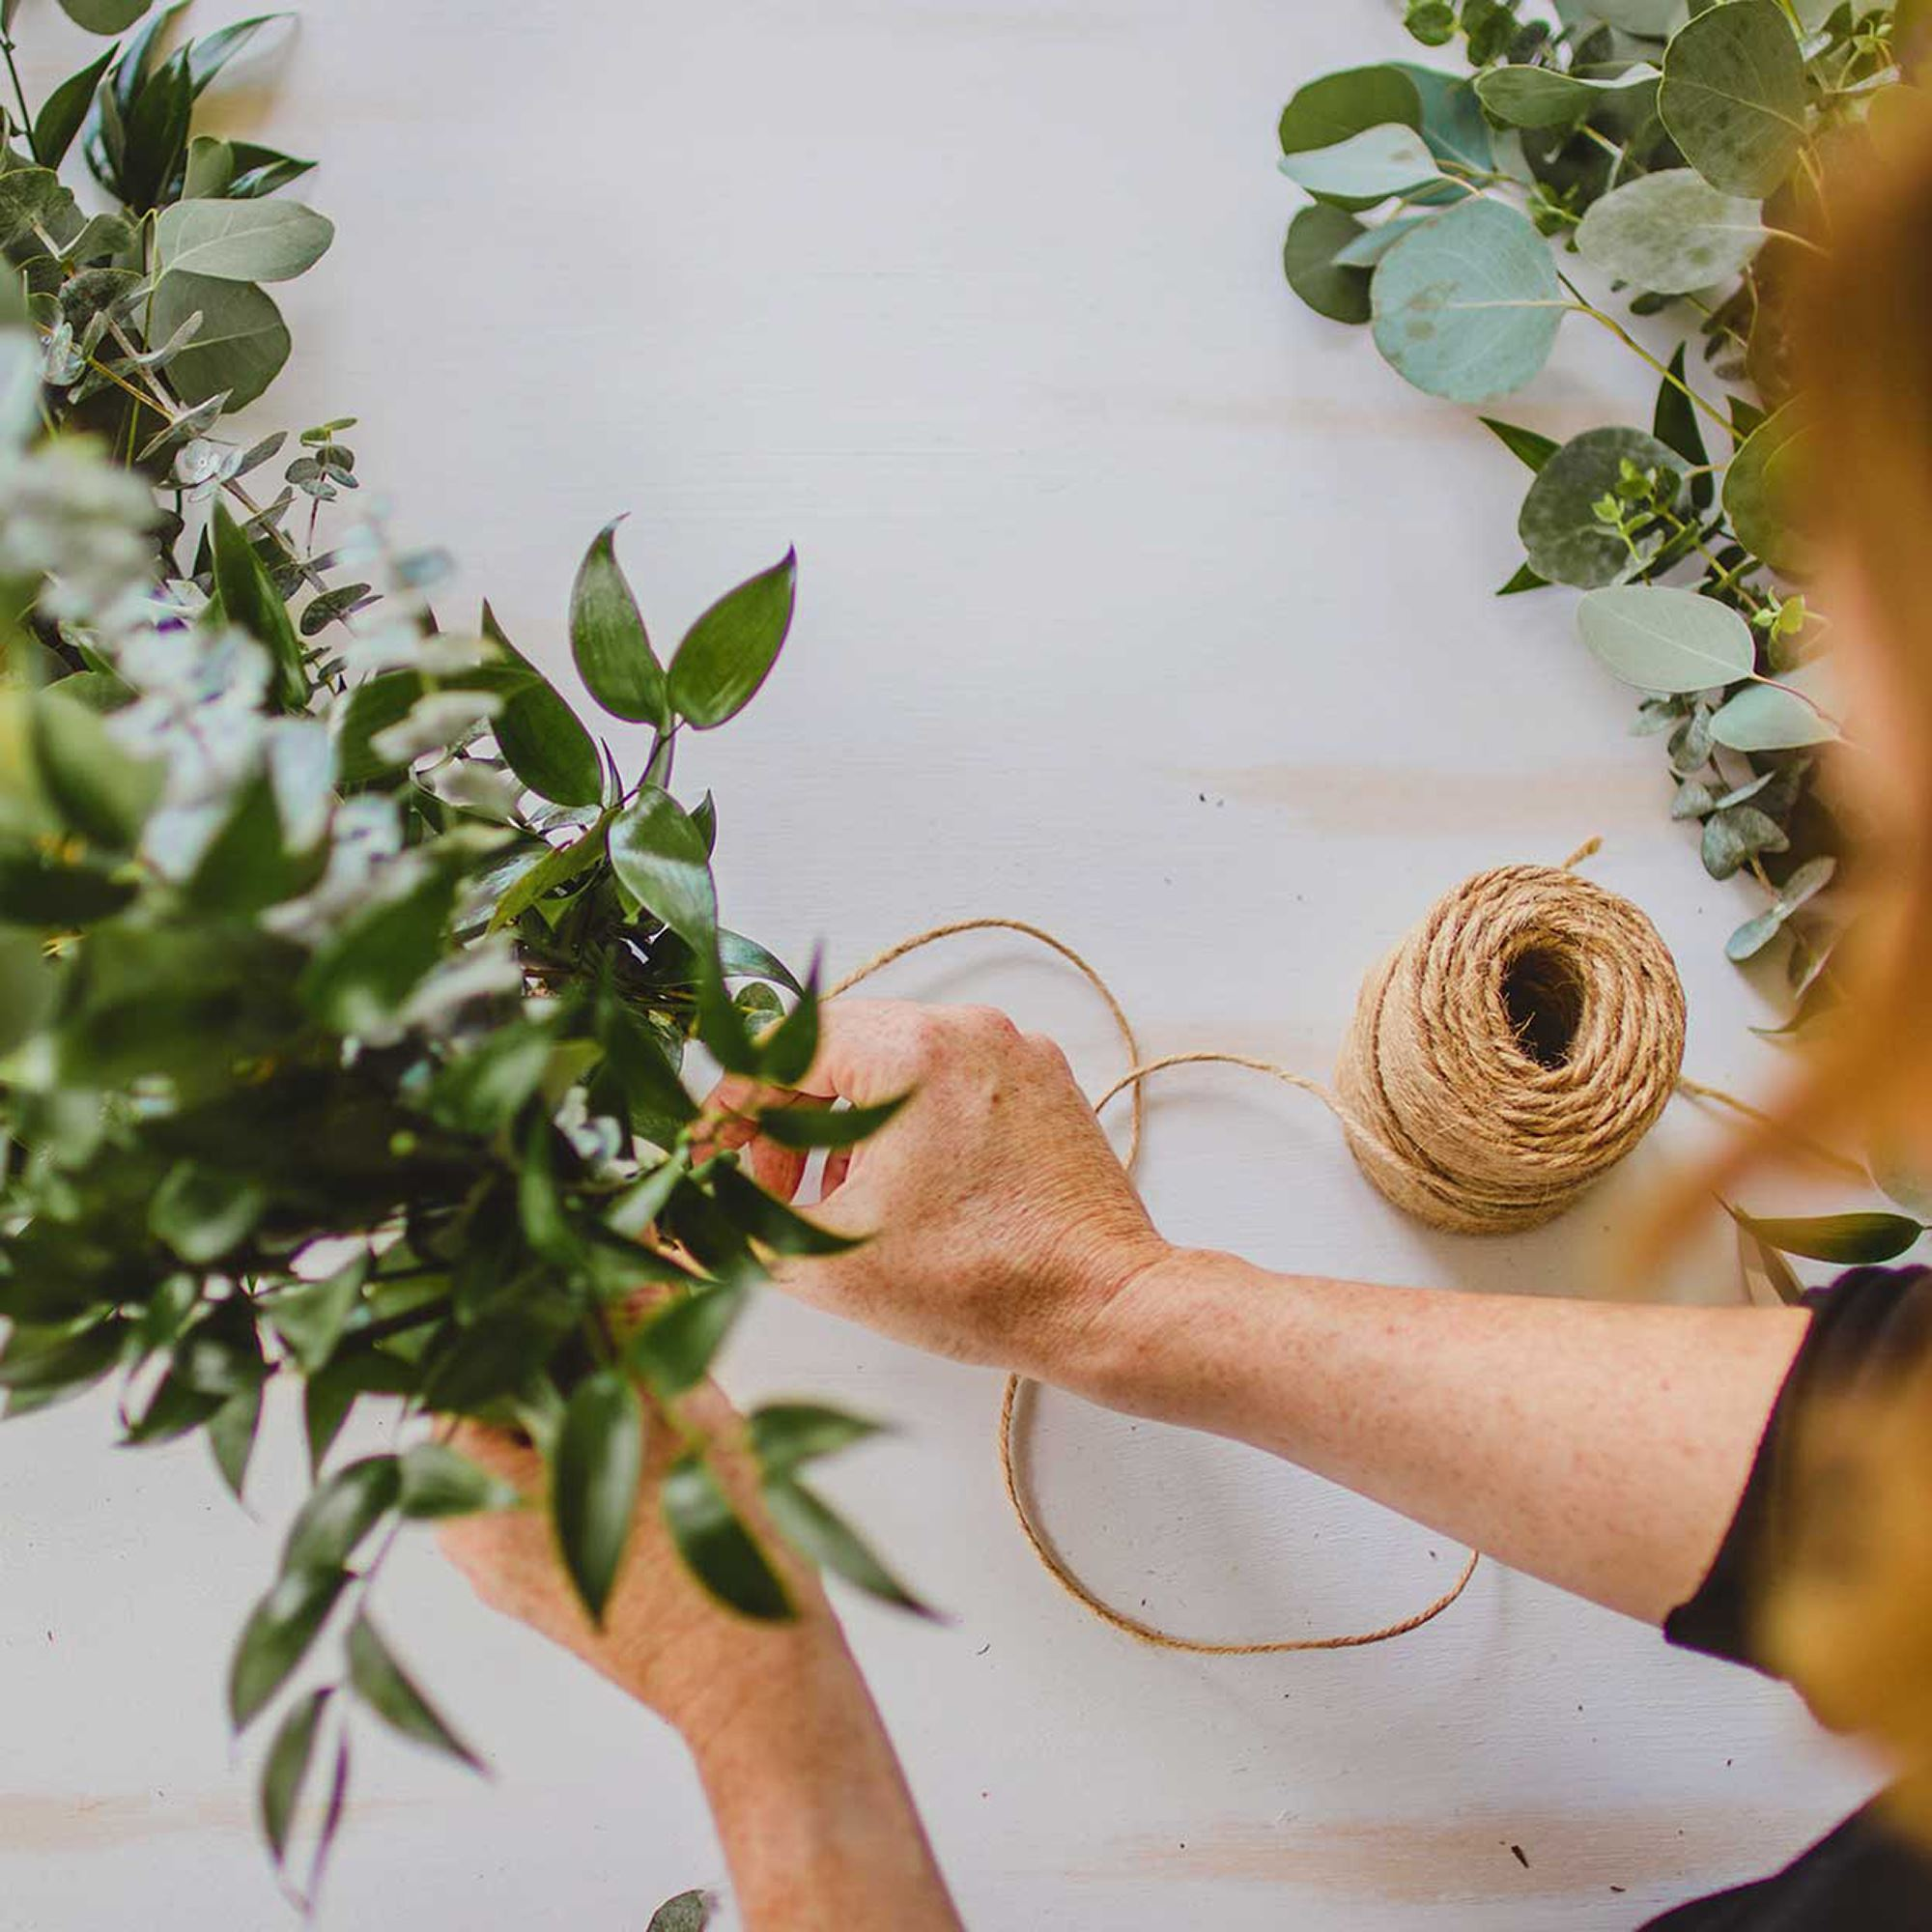 Diy Greenery Garland Using Eucalyptus Leaves